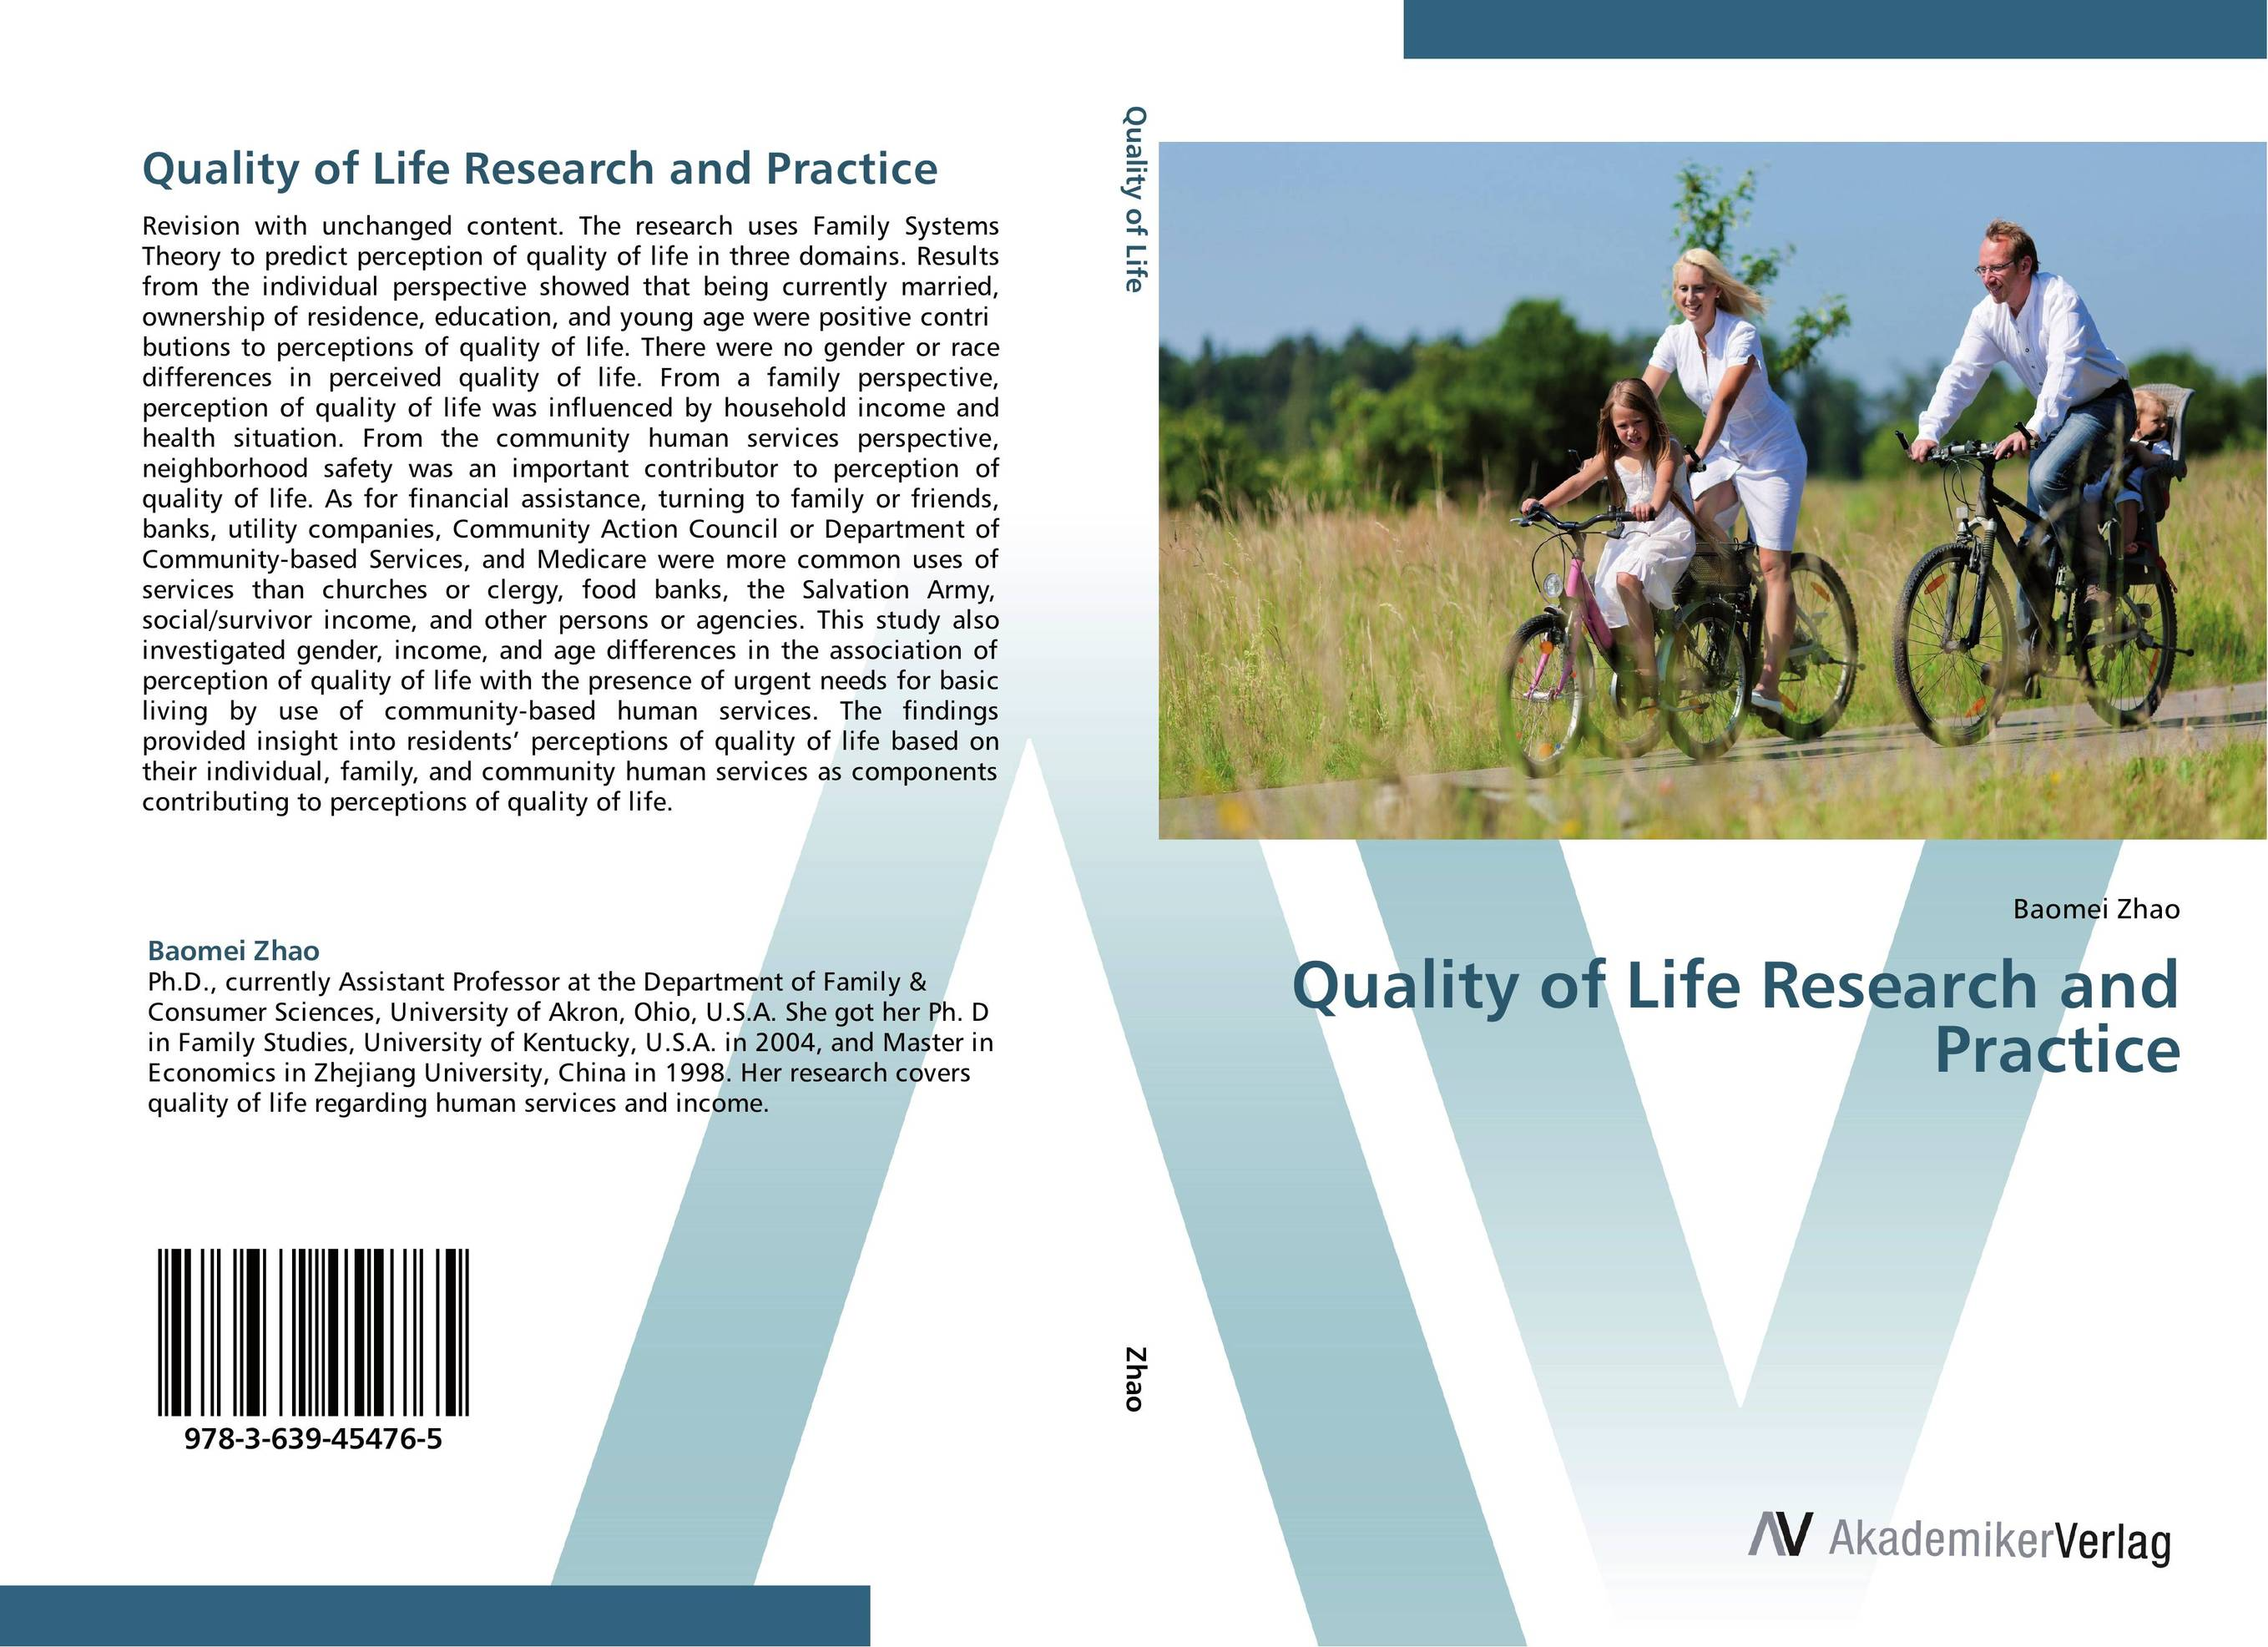 Quality of Life Research and Practice assessment of quality of care in family planning services